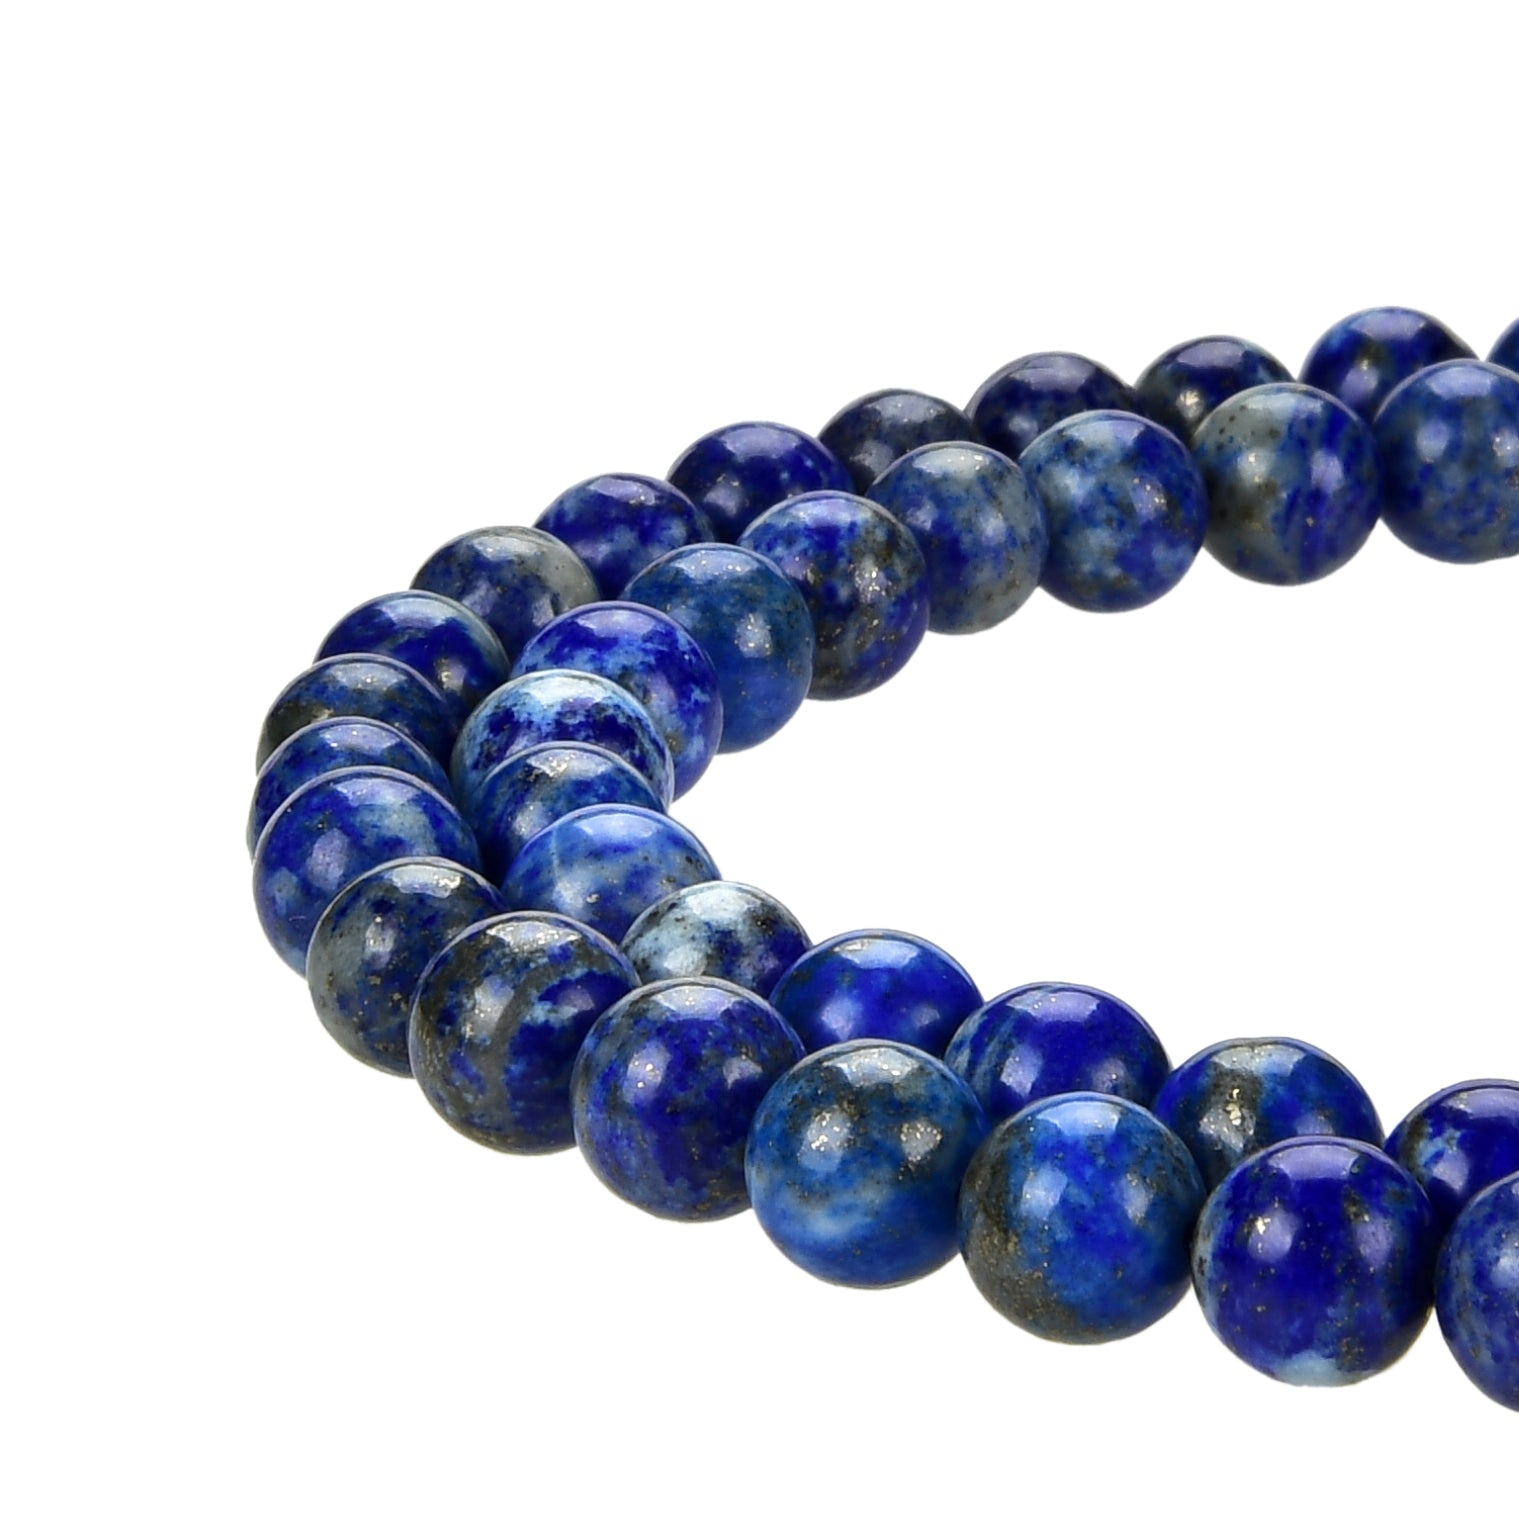 Lapis Lazuli Gemstone Round Loose Beads 8MM Approximate 15.5 inch